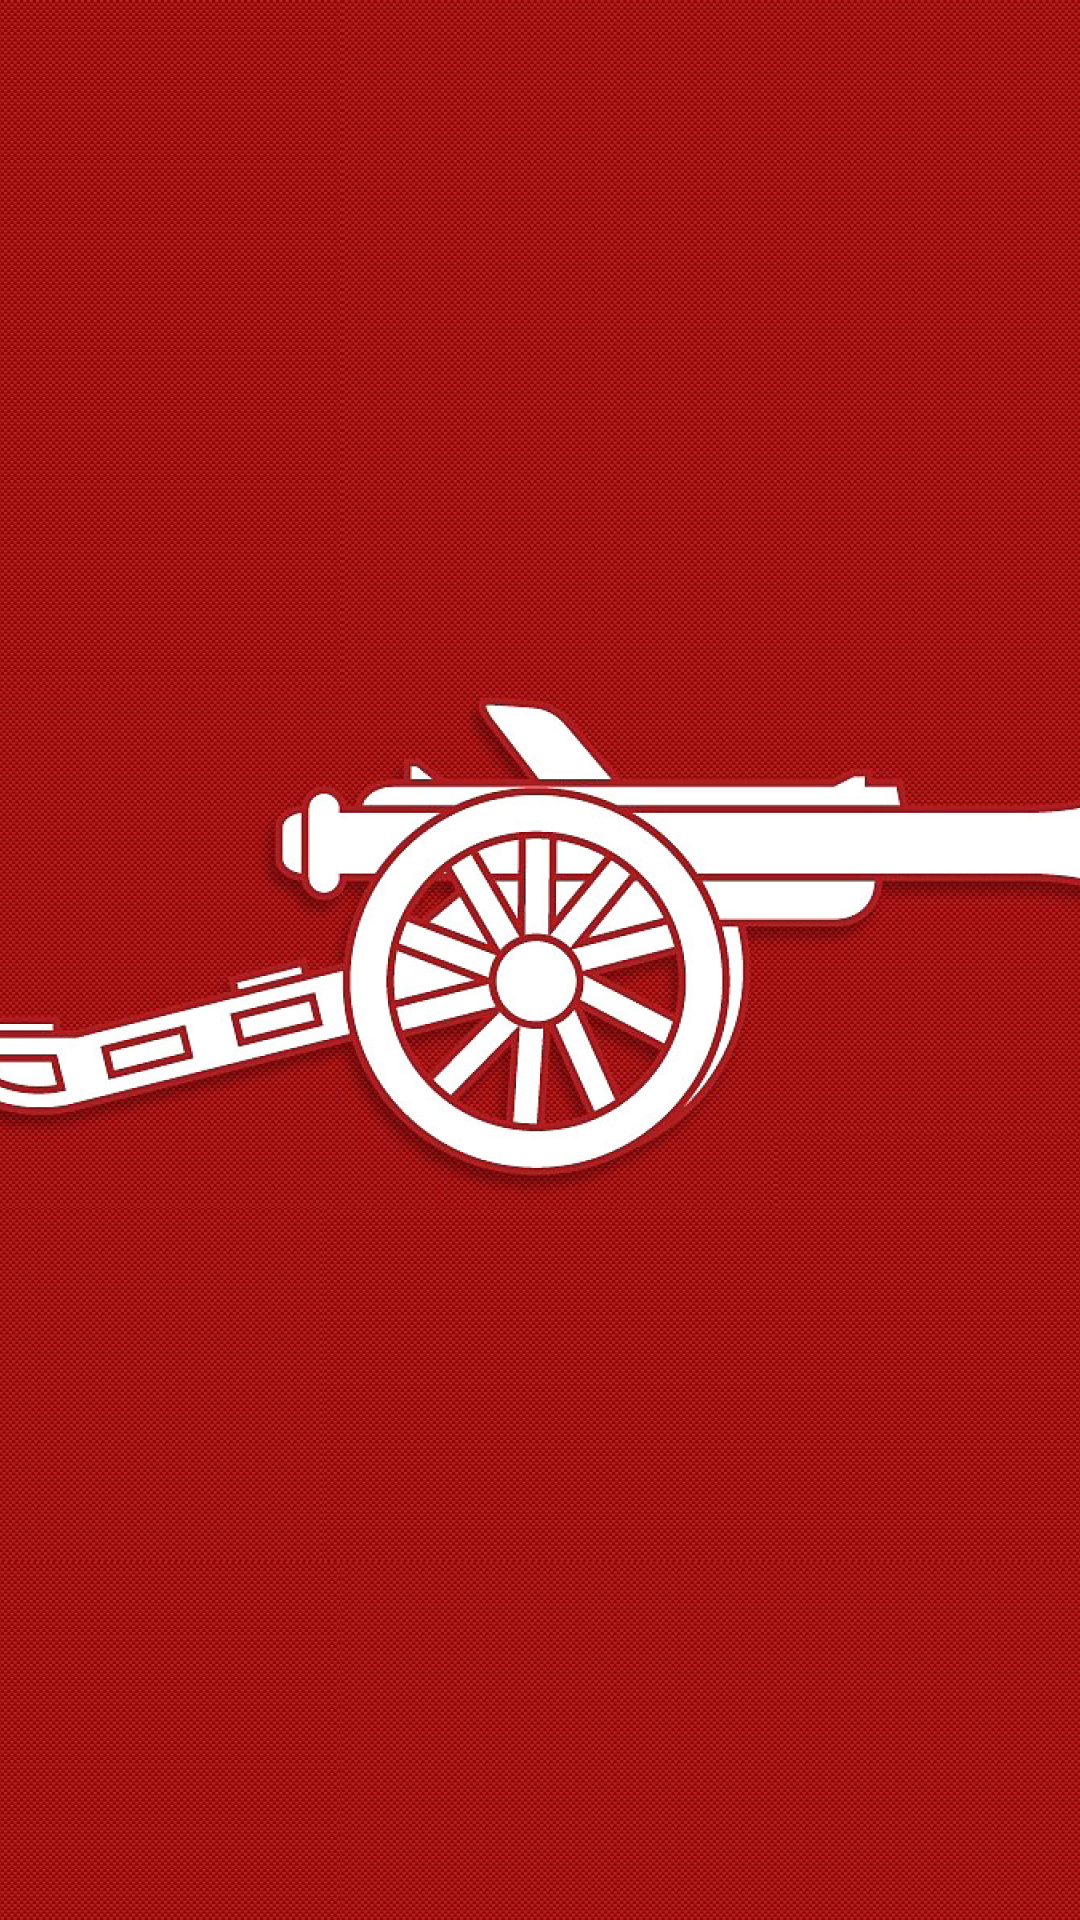 Arsenal Iphone Wallpaper3 Iphone 11 Pro Wallpaper Arsenal 1080x1920 Download Hd Wallpaper Wallpapertip